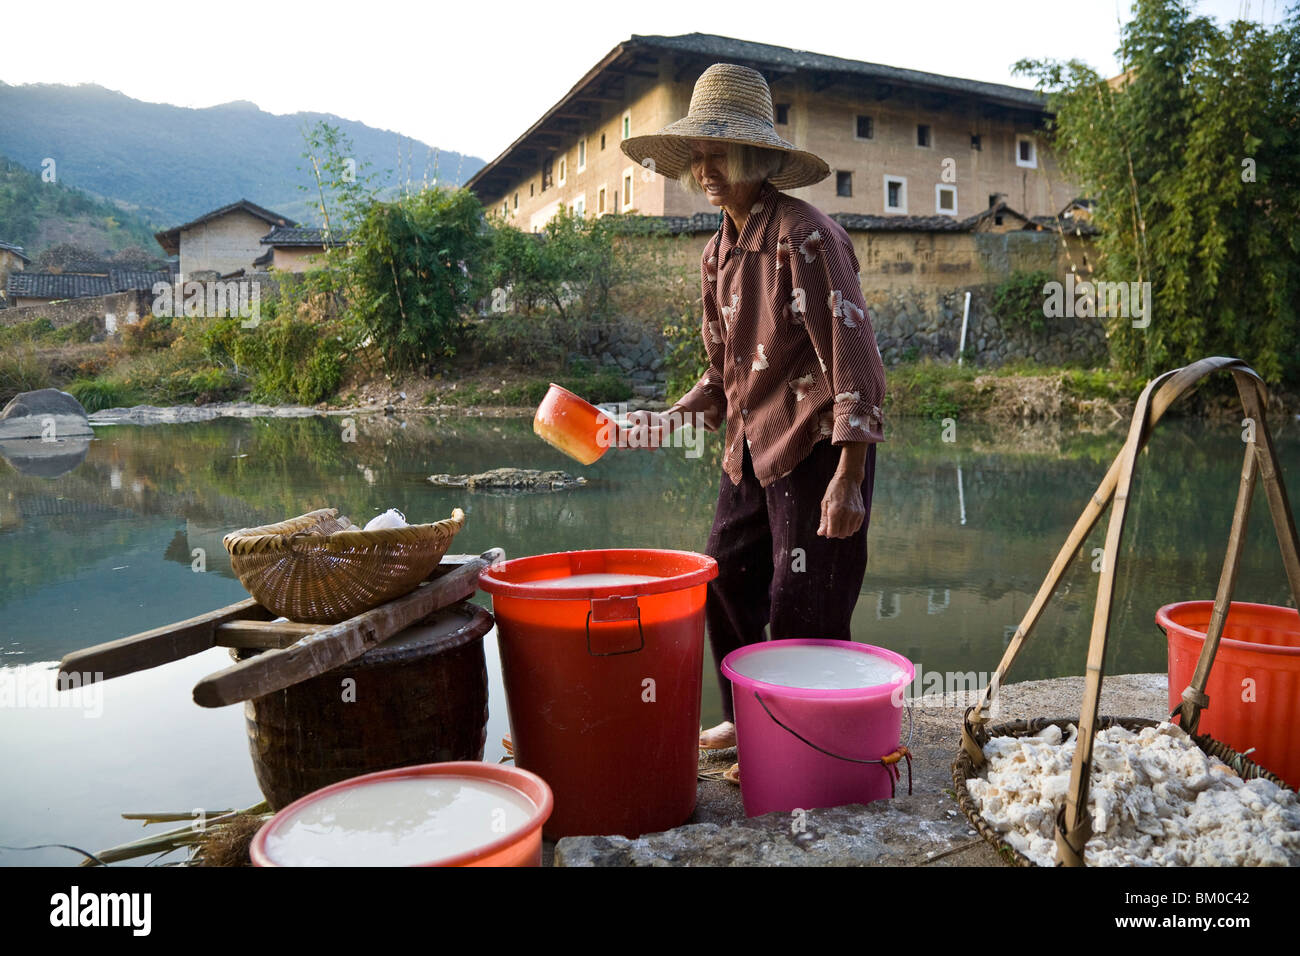 Chinese farmer fetching water from a small stream, village of the Hakka, Hongkeng, Longyan, Fujian, China, Asia - Stock Image